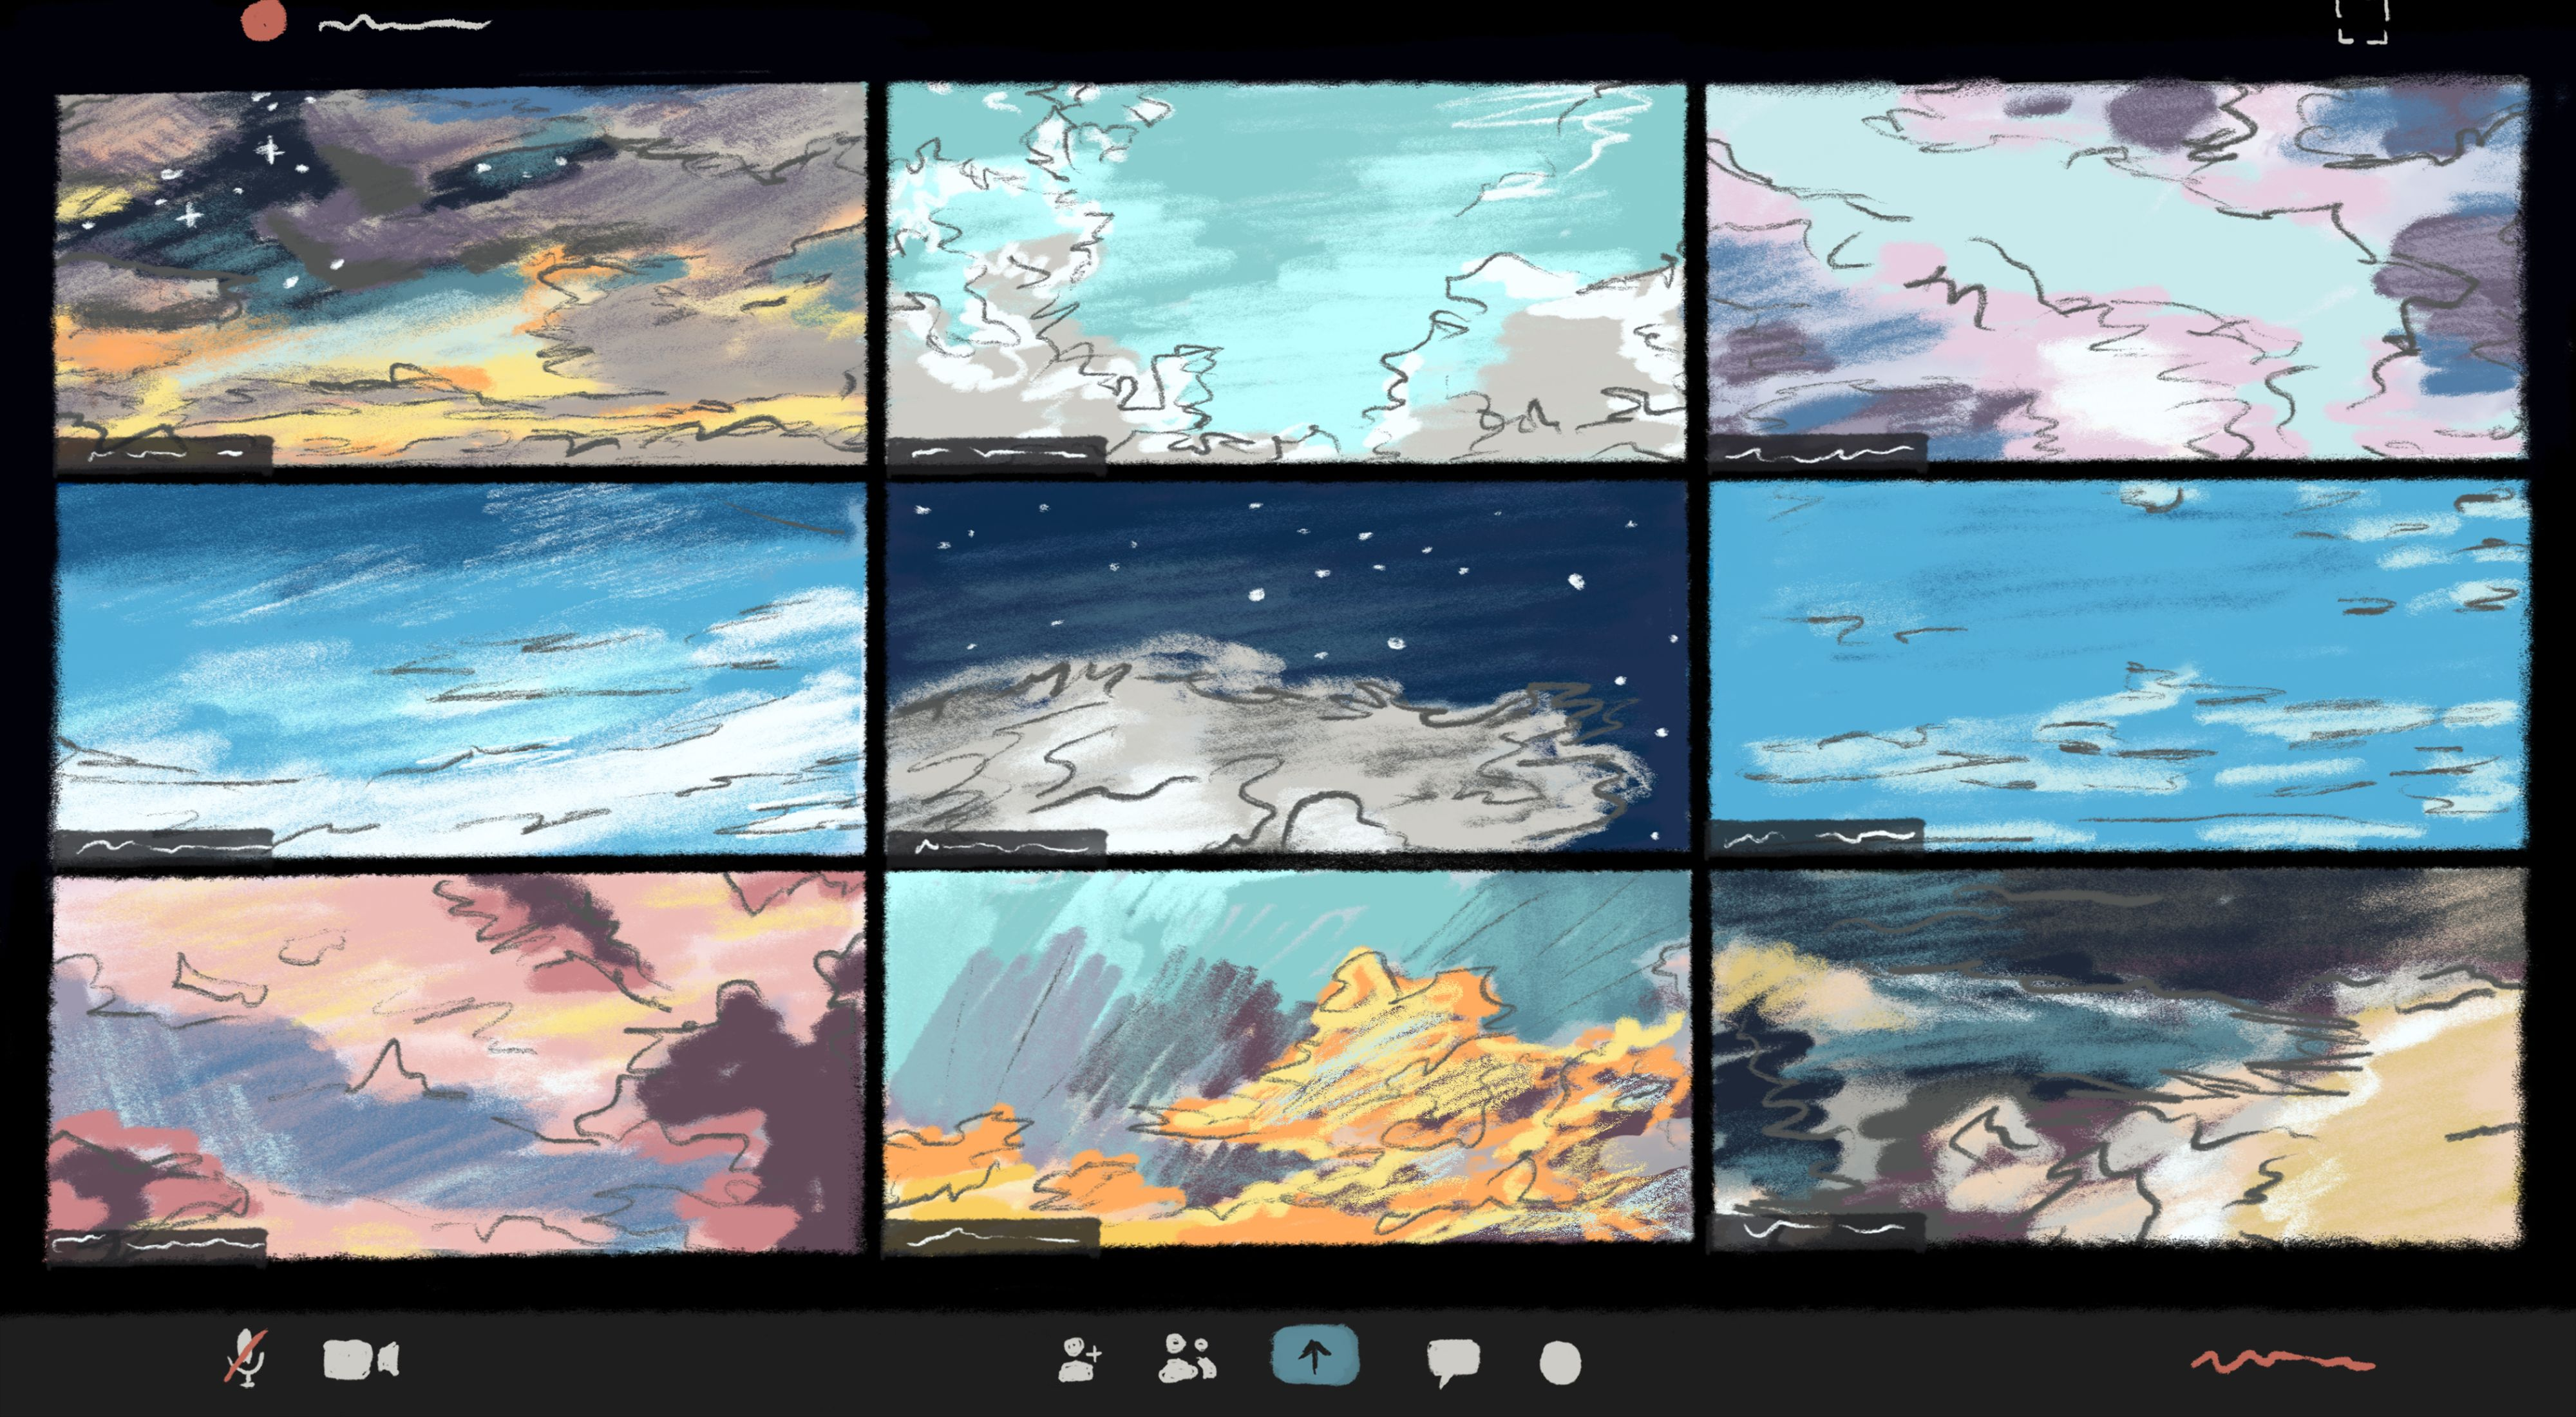 An illustration of a video chat interface with different sky scenes in the video frames against a black background.